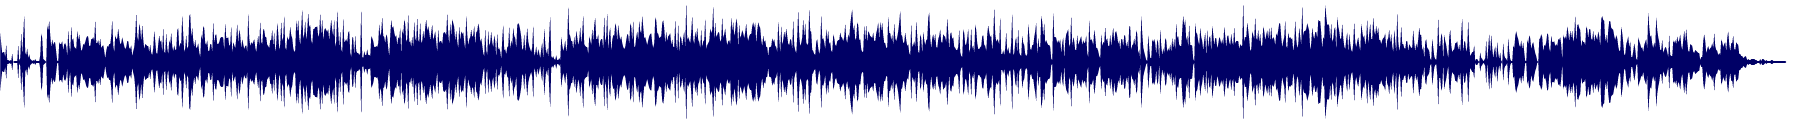 waveform of track #74035